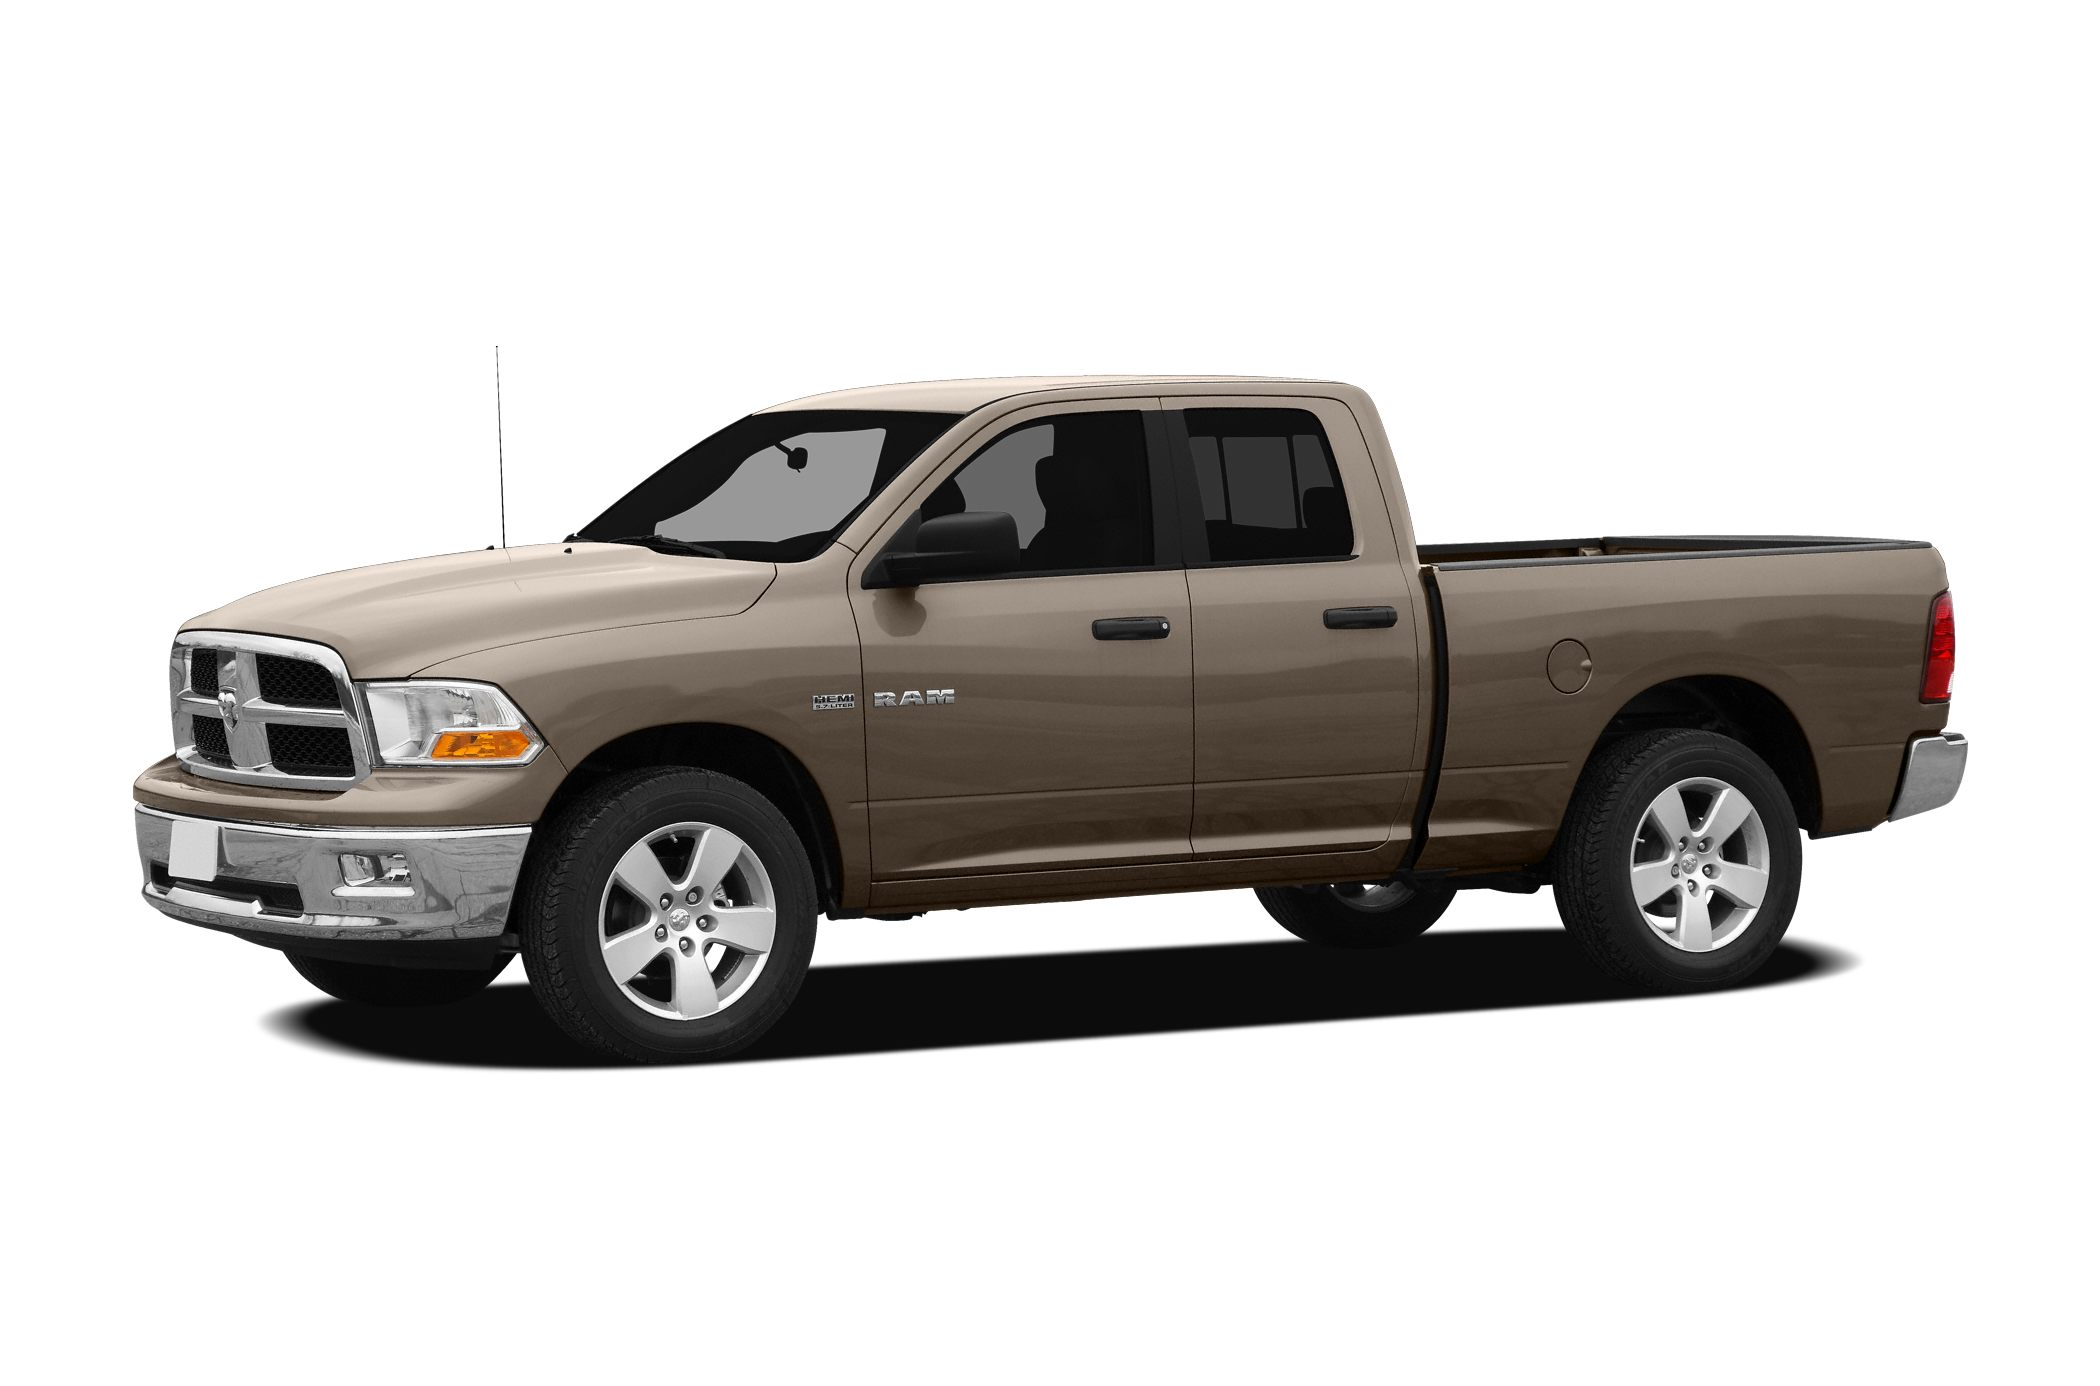 2010 Dodge Ram 1500 SLTSportTRX New In Stock Own the road at every turn 4 Wheel Drive4X4